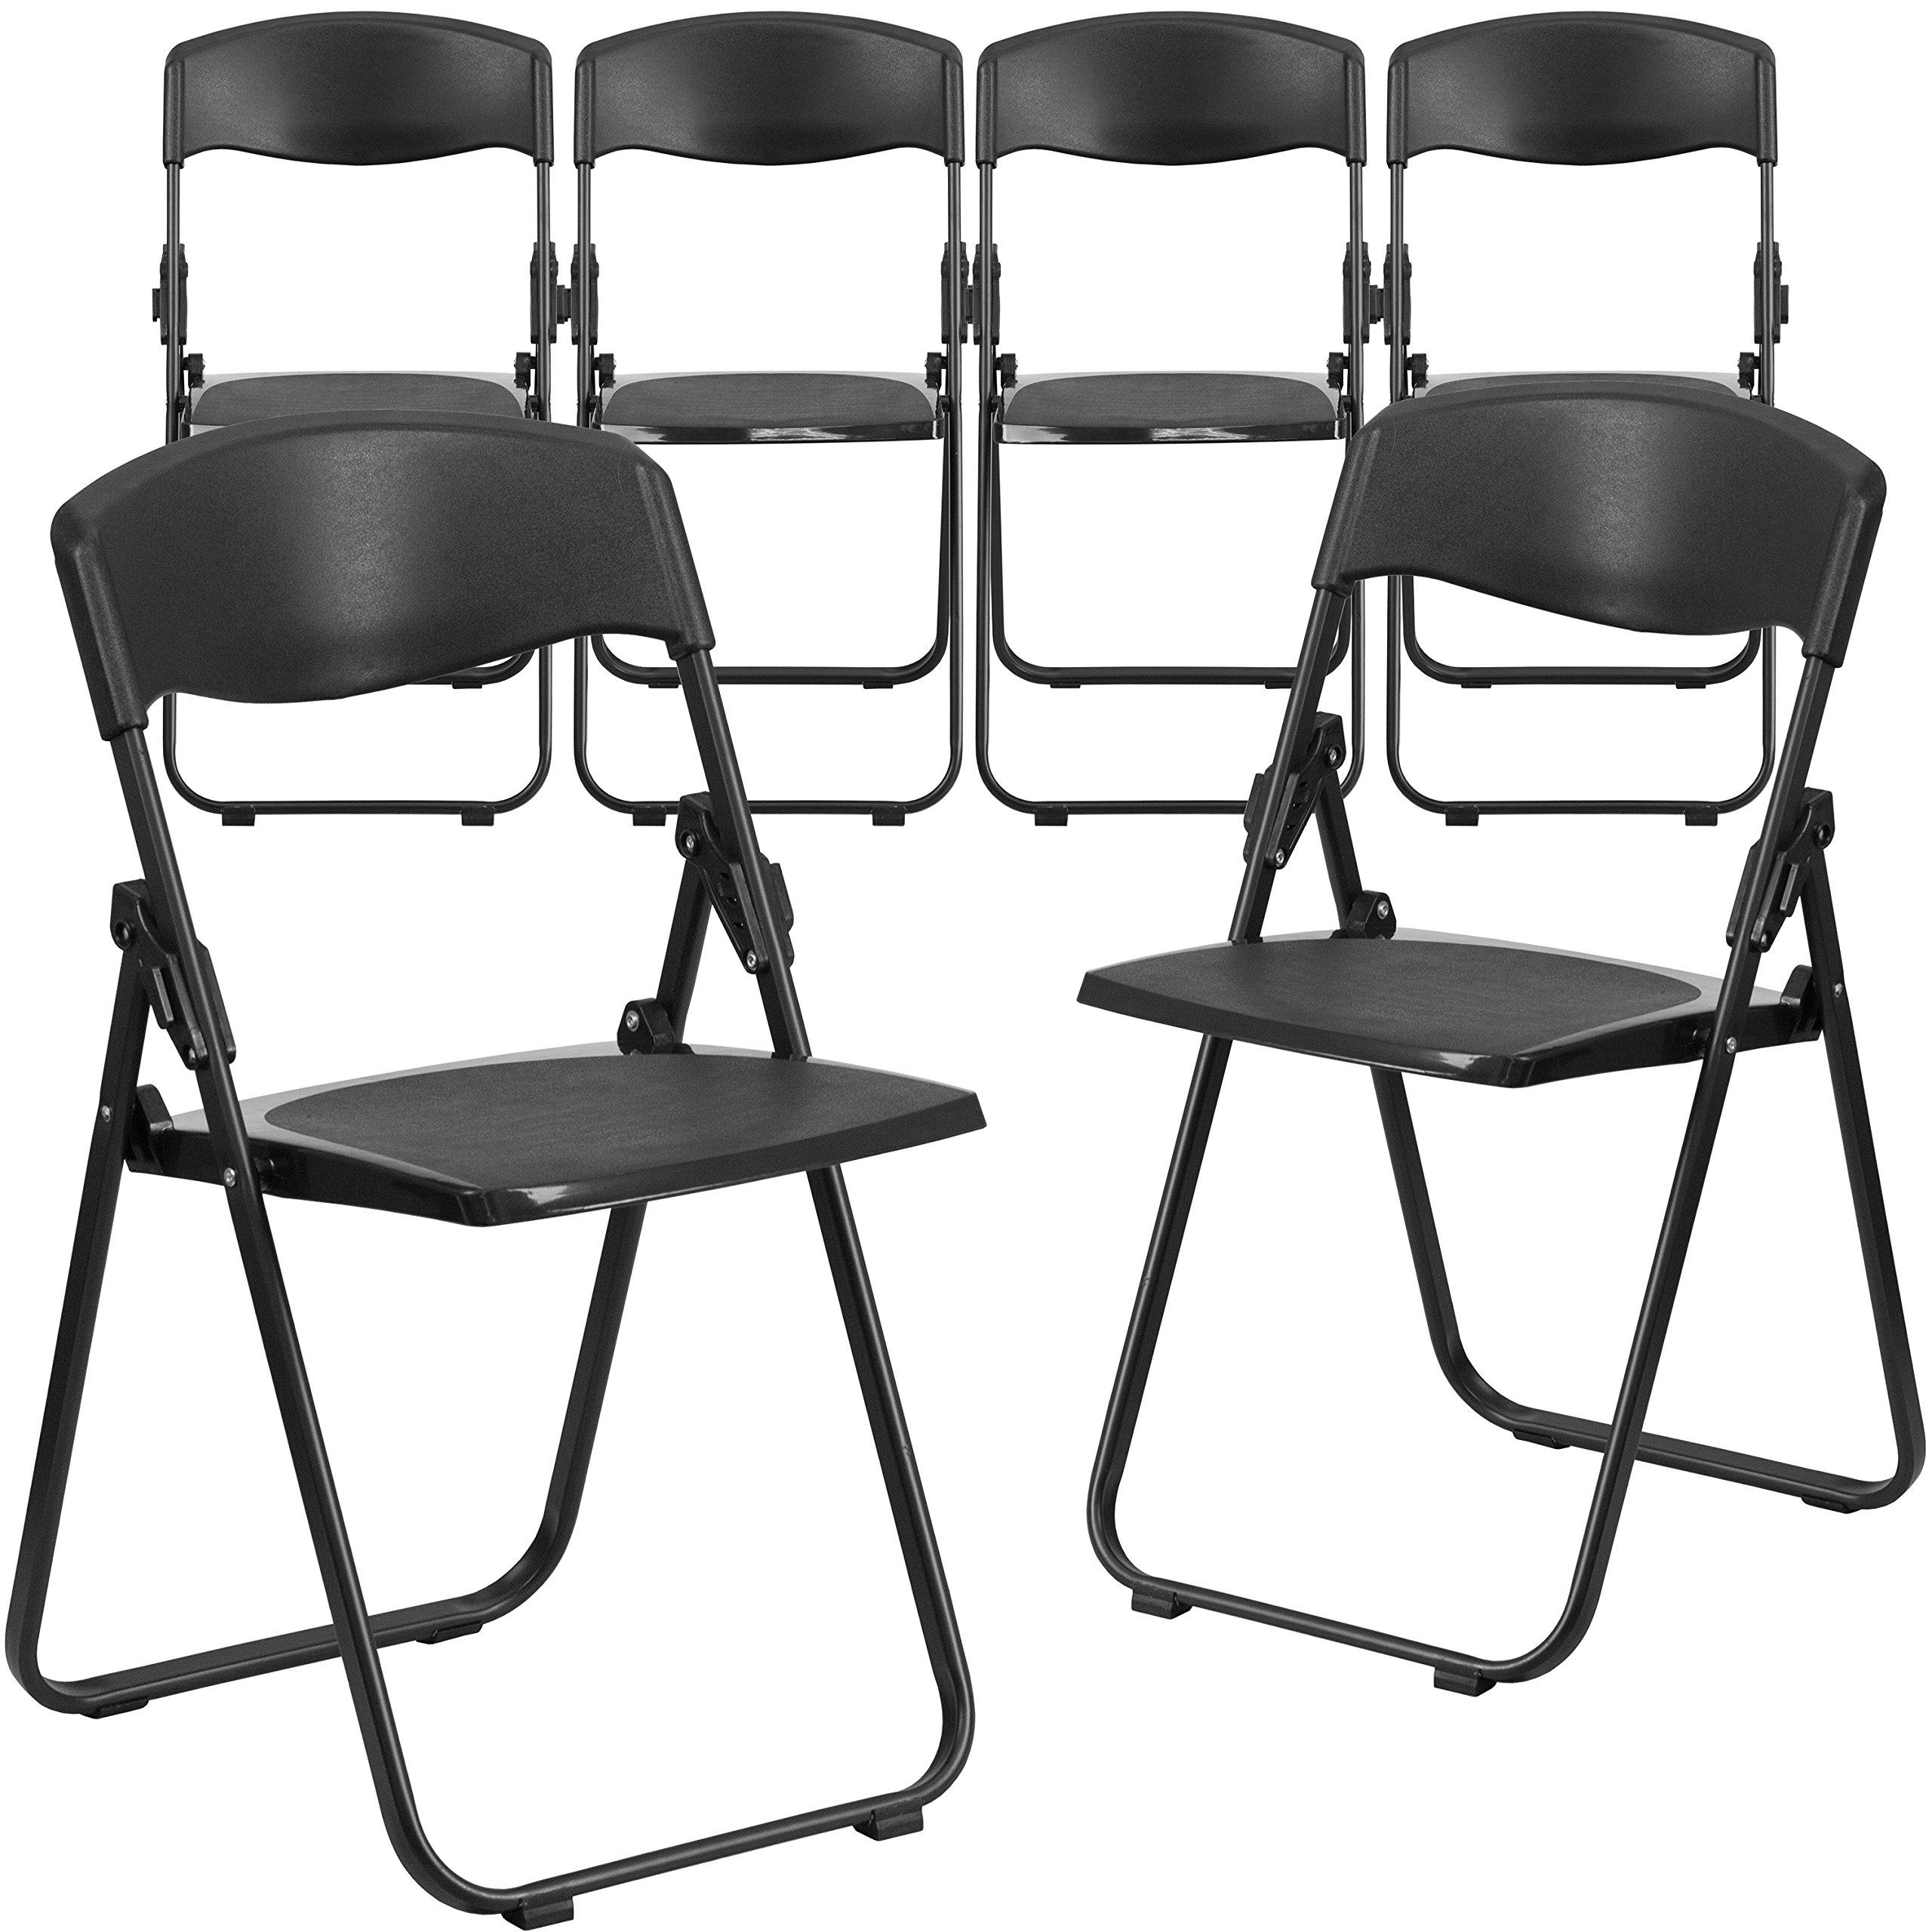 Flash Furniture 6 Pk. HERCULES Series 880 lb. Capacity Heavy Duty Black Plastic Folding Chair with Built-in Ganging Brackets by Flash Furniture